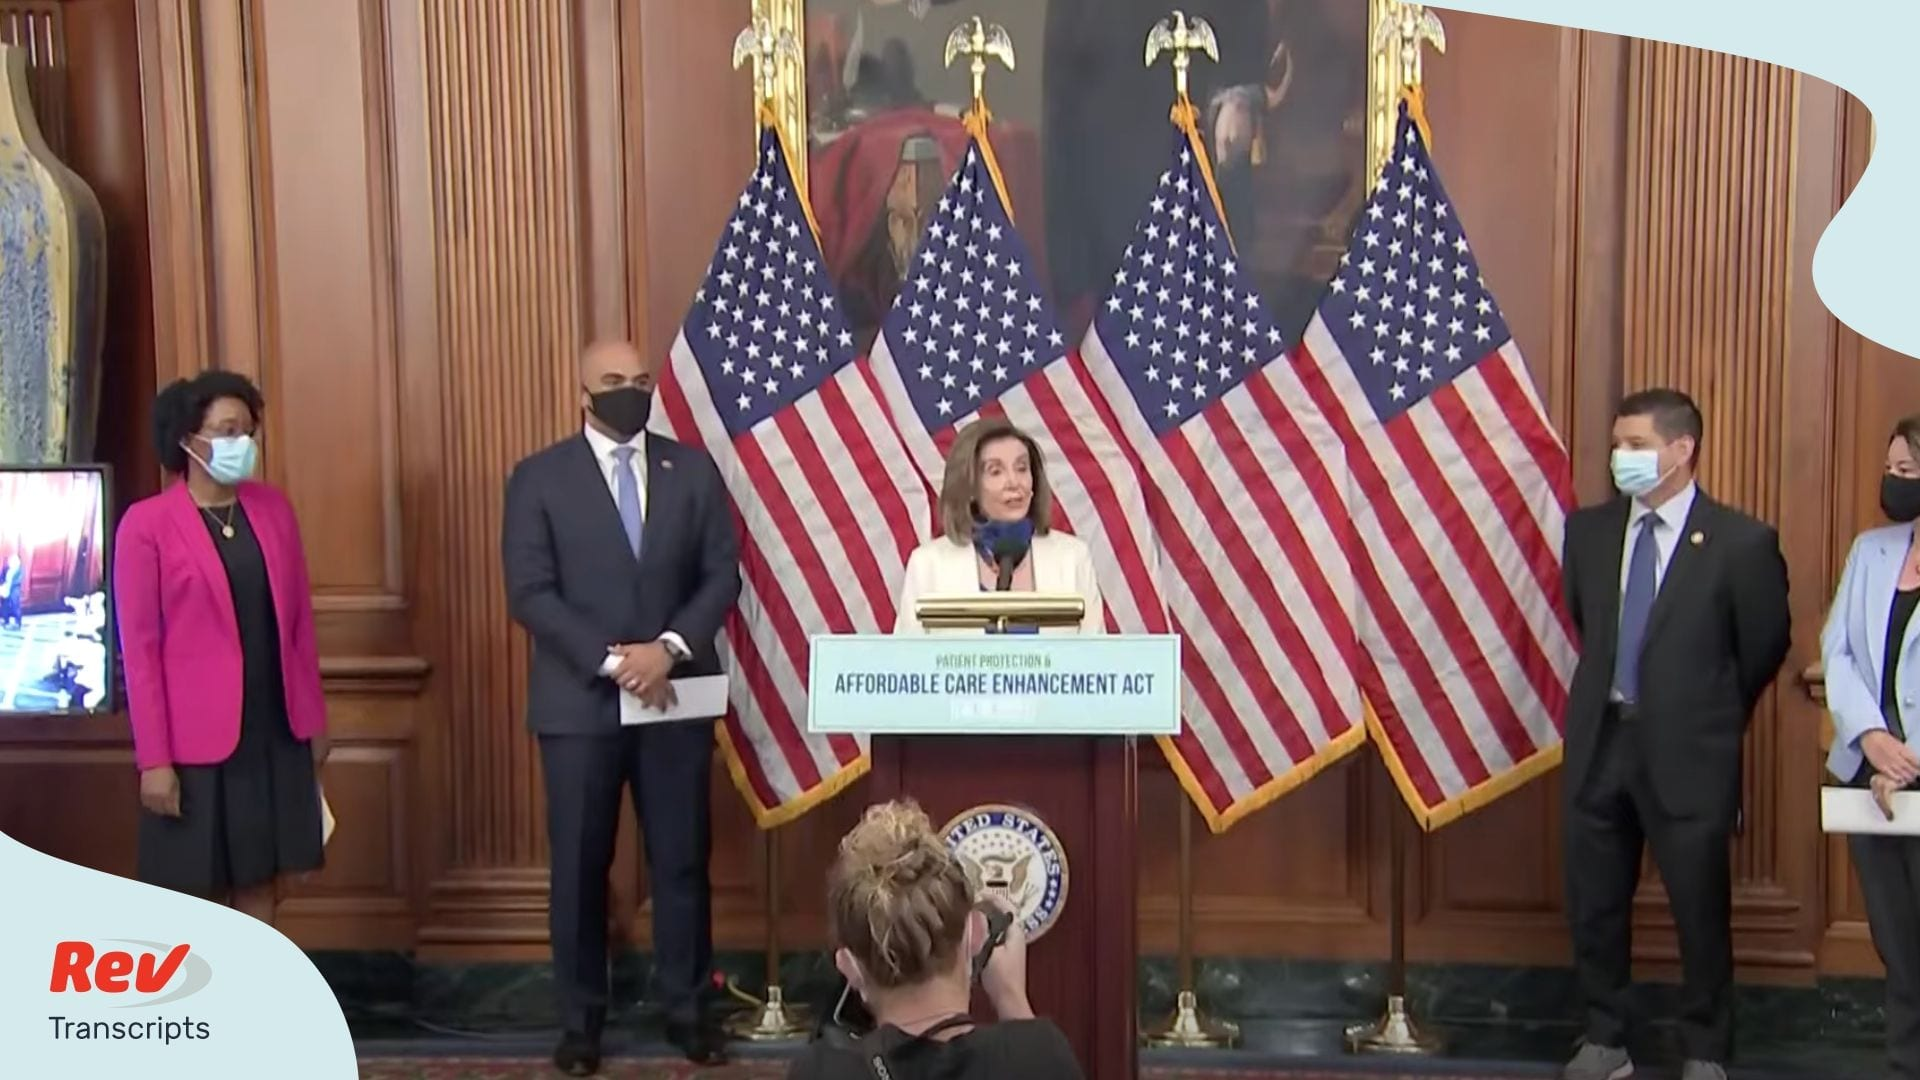 Nancy Pelosi House Democrats Press Conference June 24